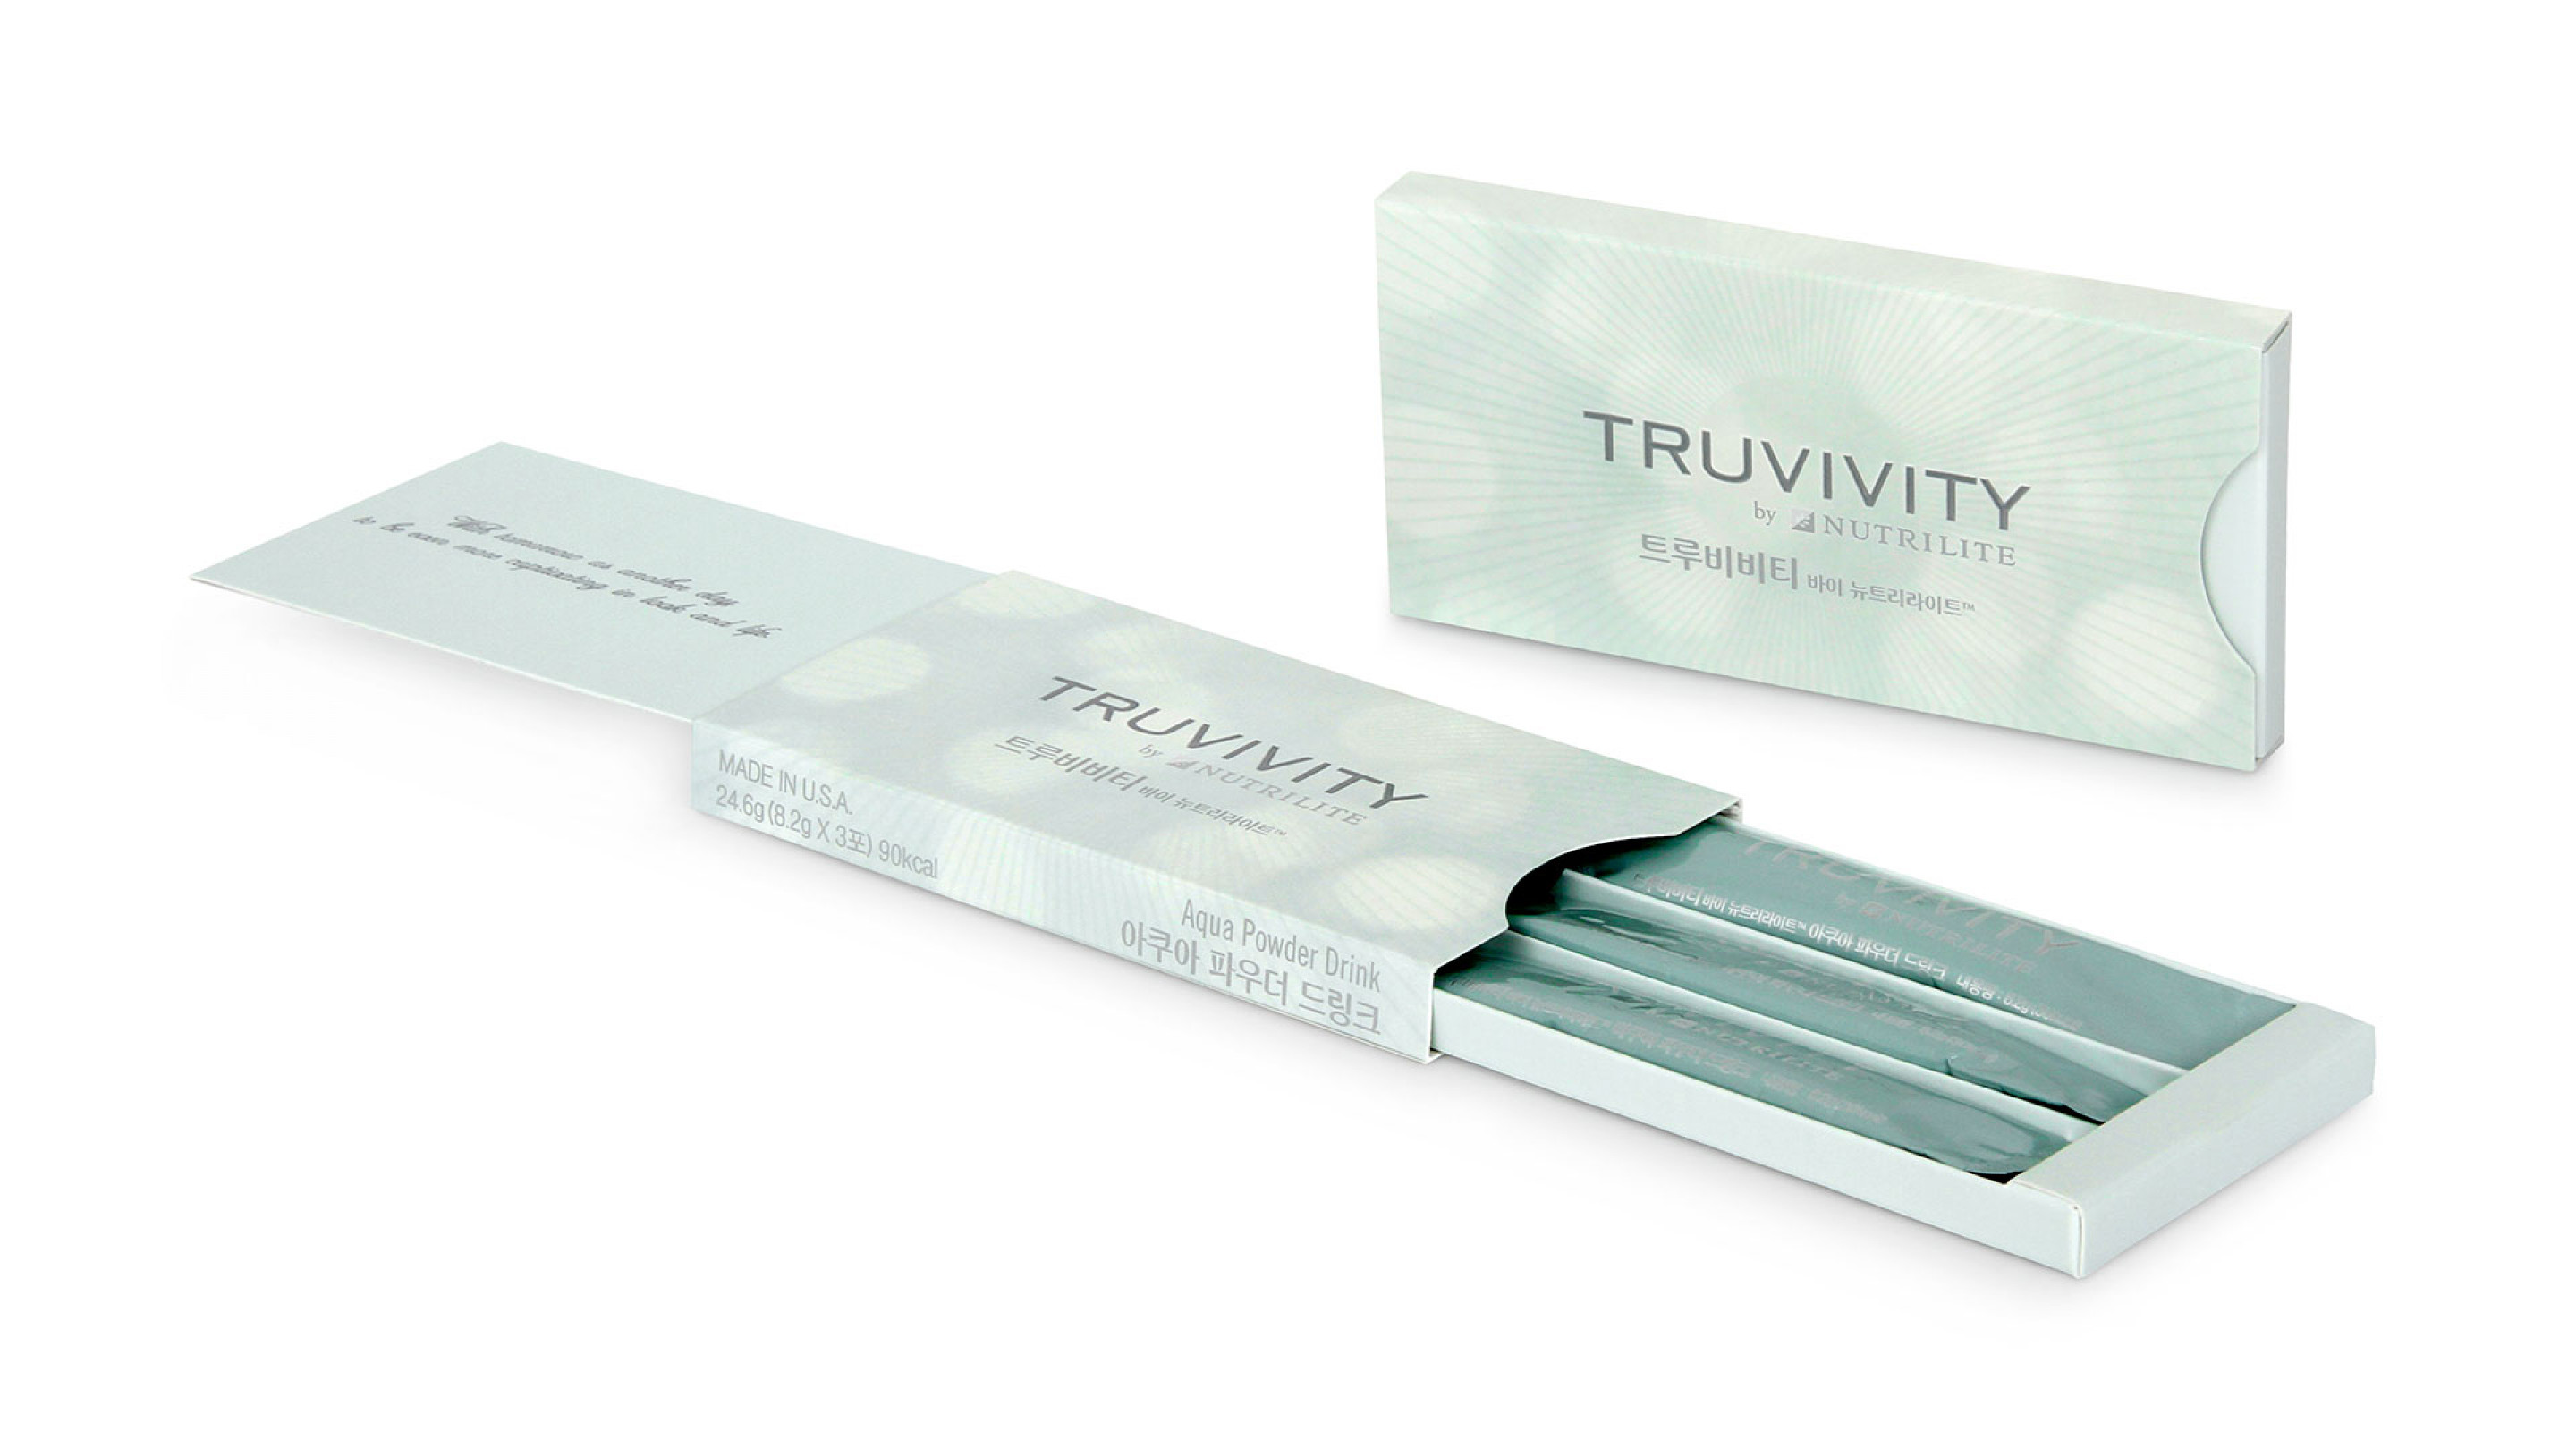 Amway Truvivity by Nutrilite Sachet Packaging